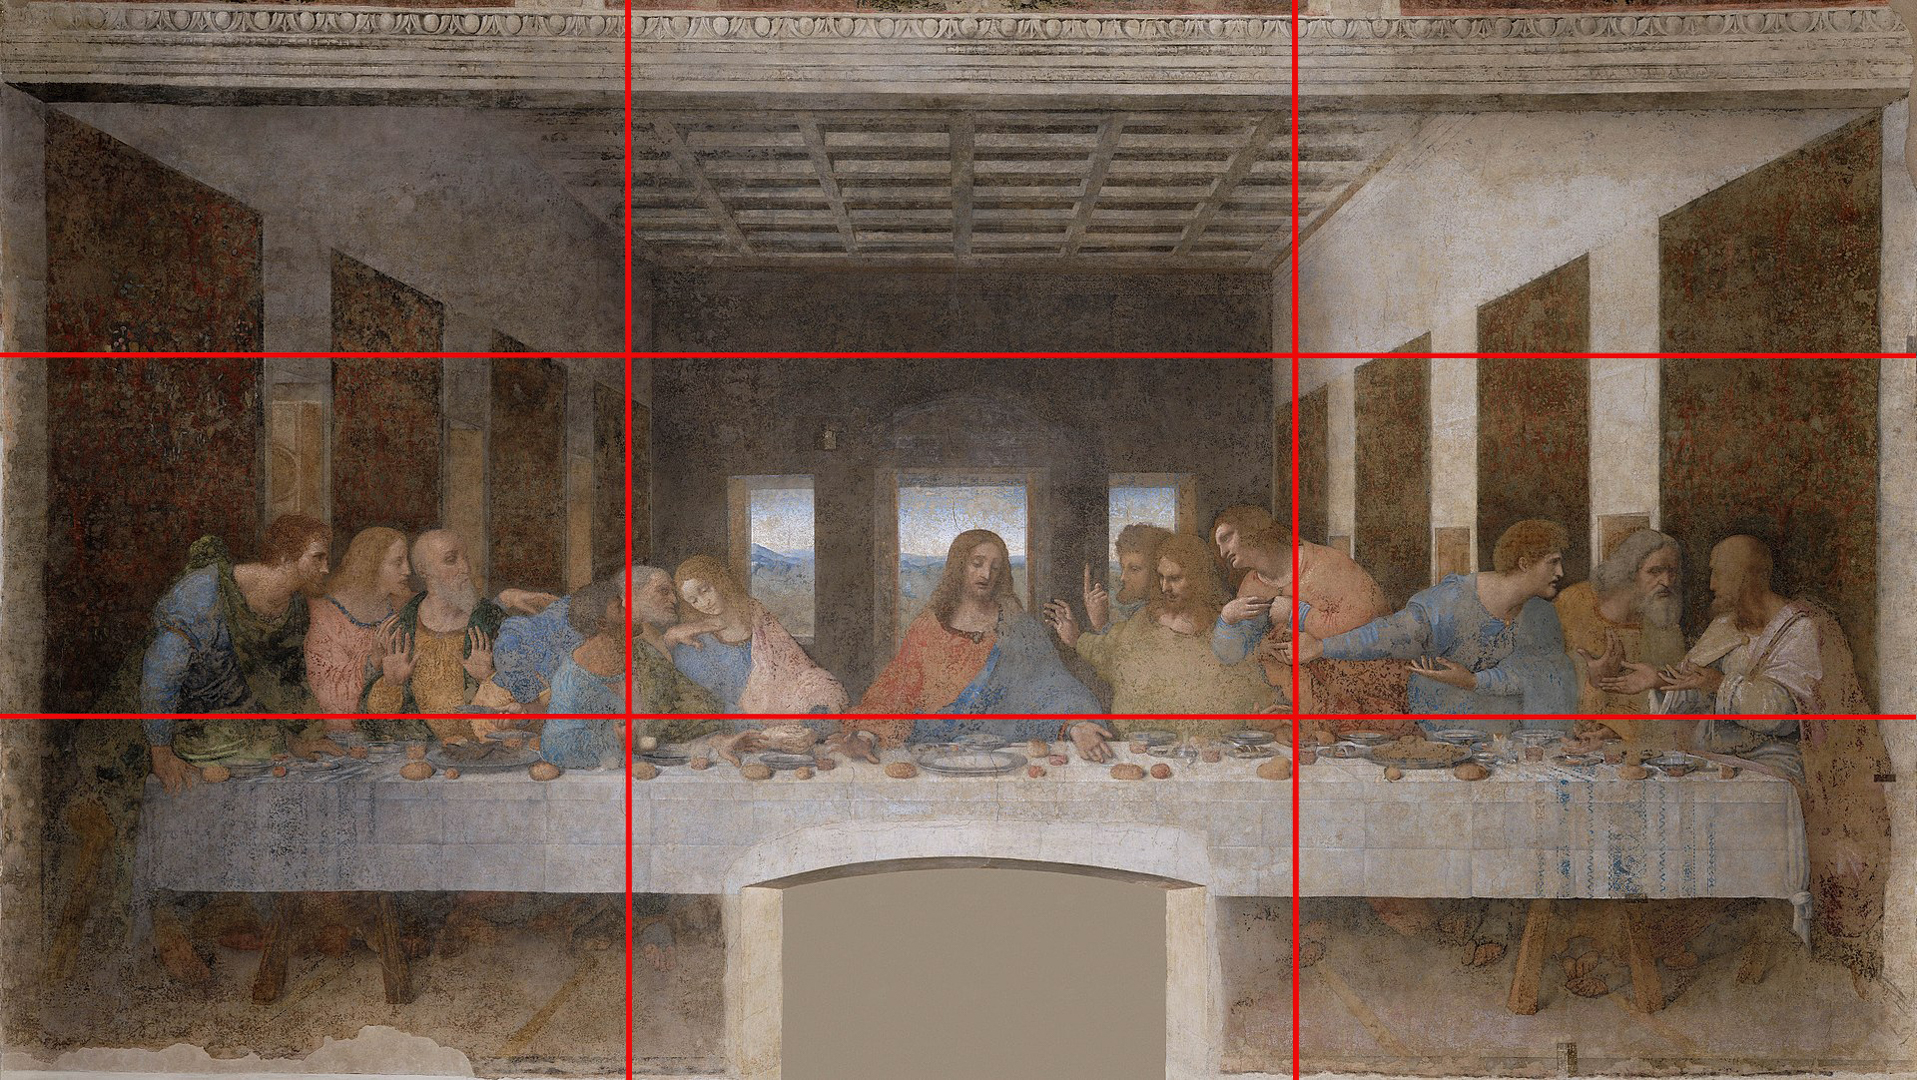 leonardo da vinci's last supper, illustrating the rule of thirds.